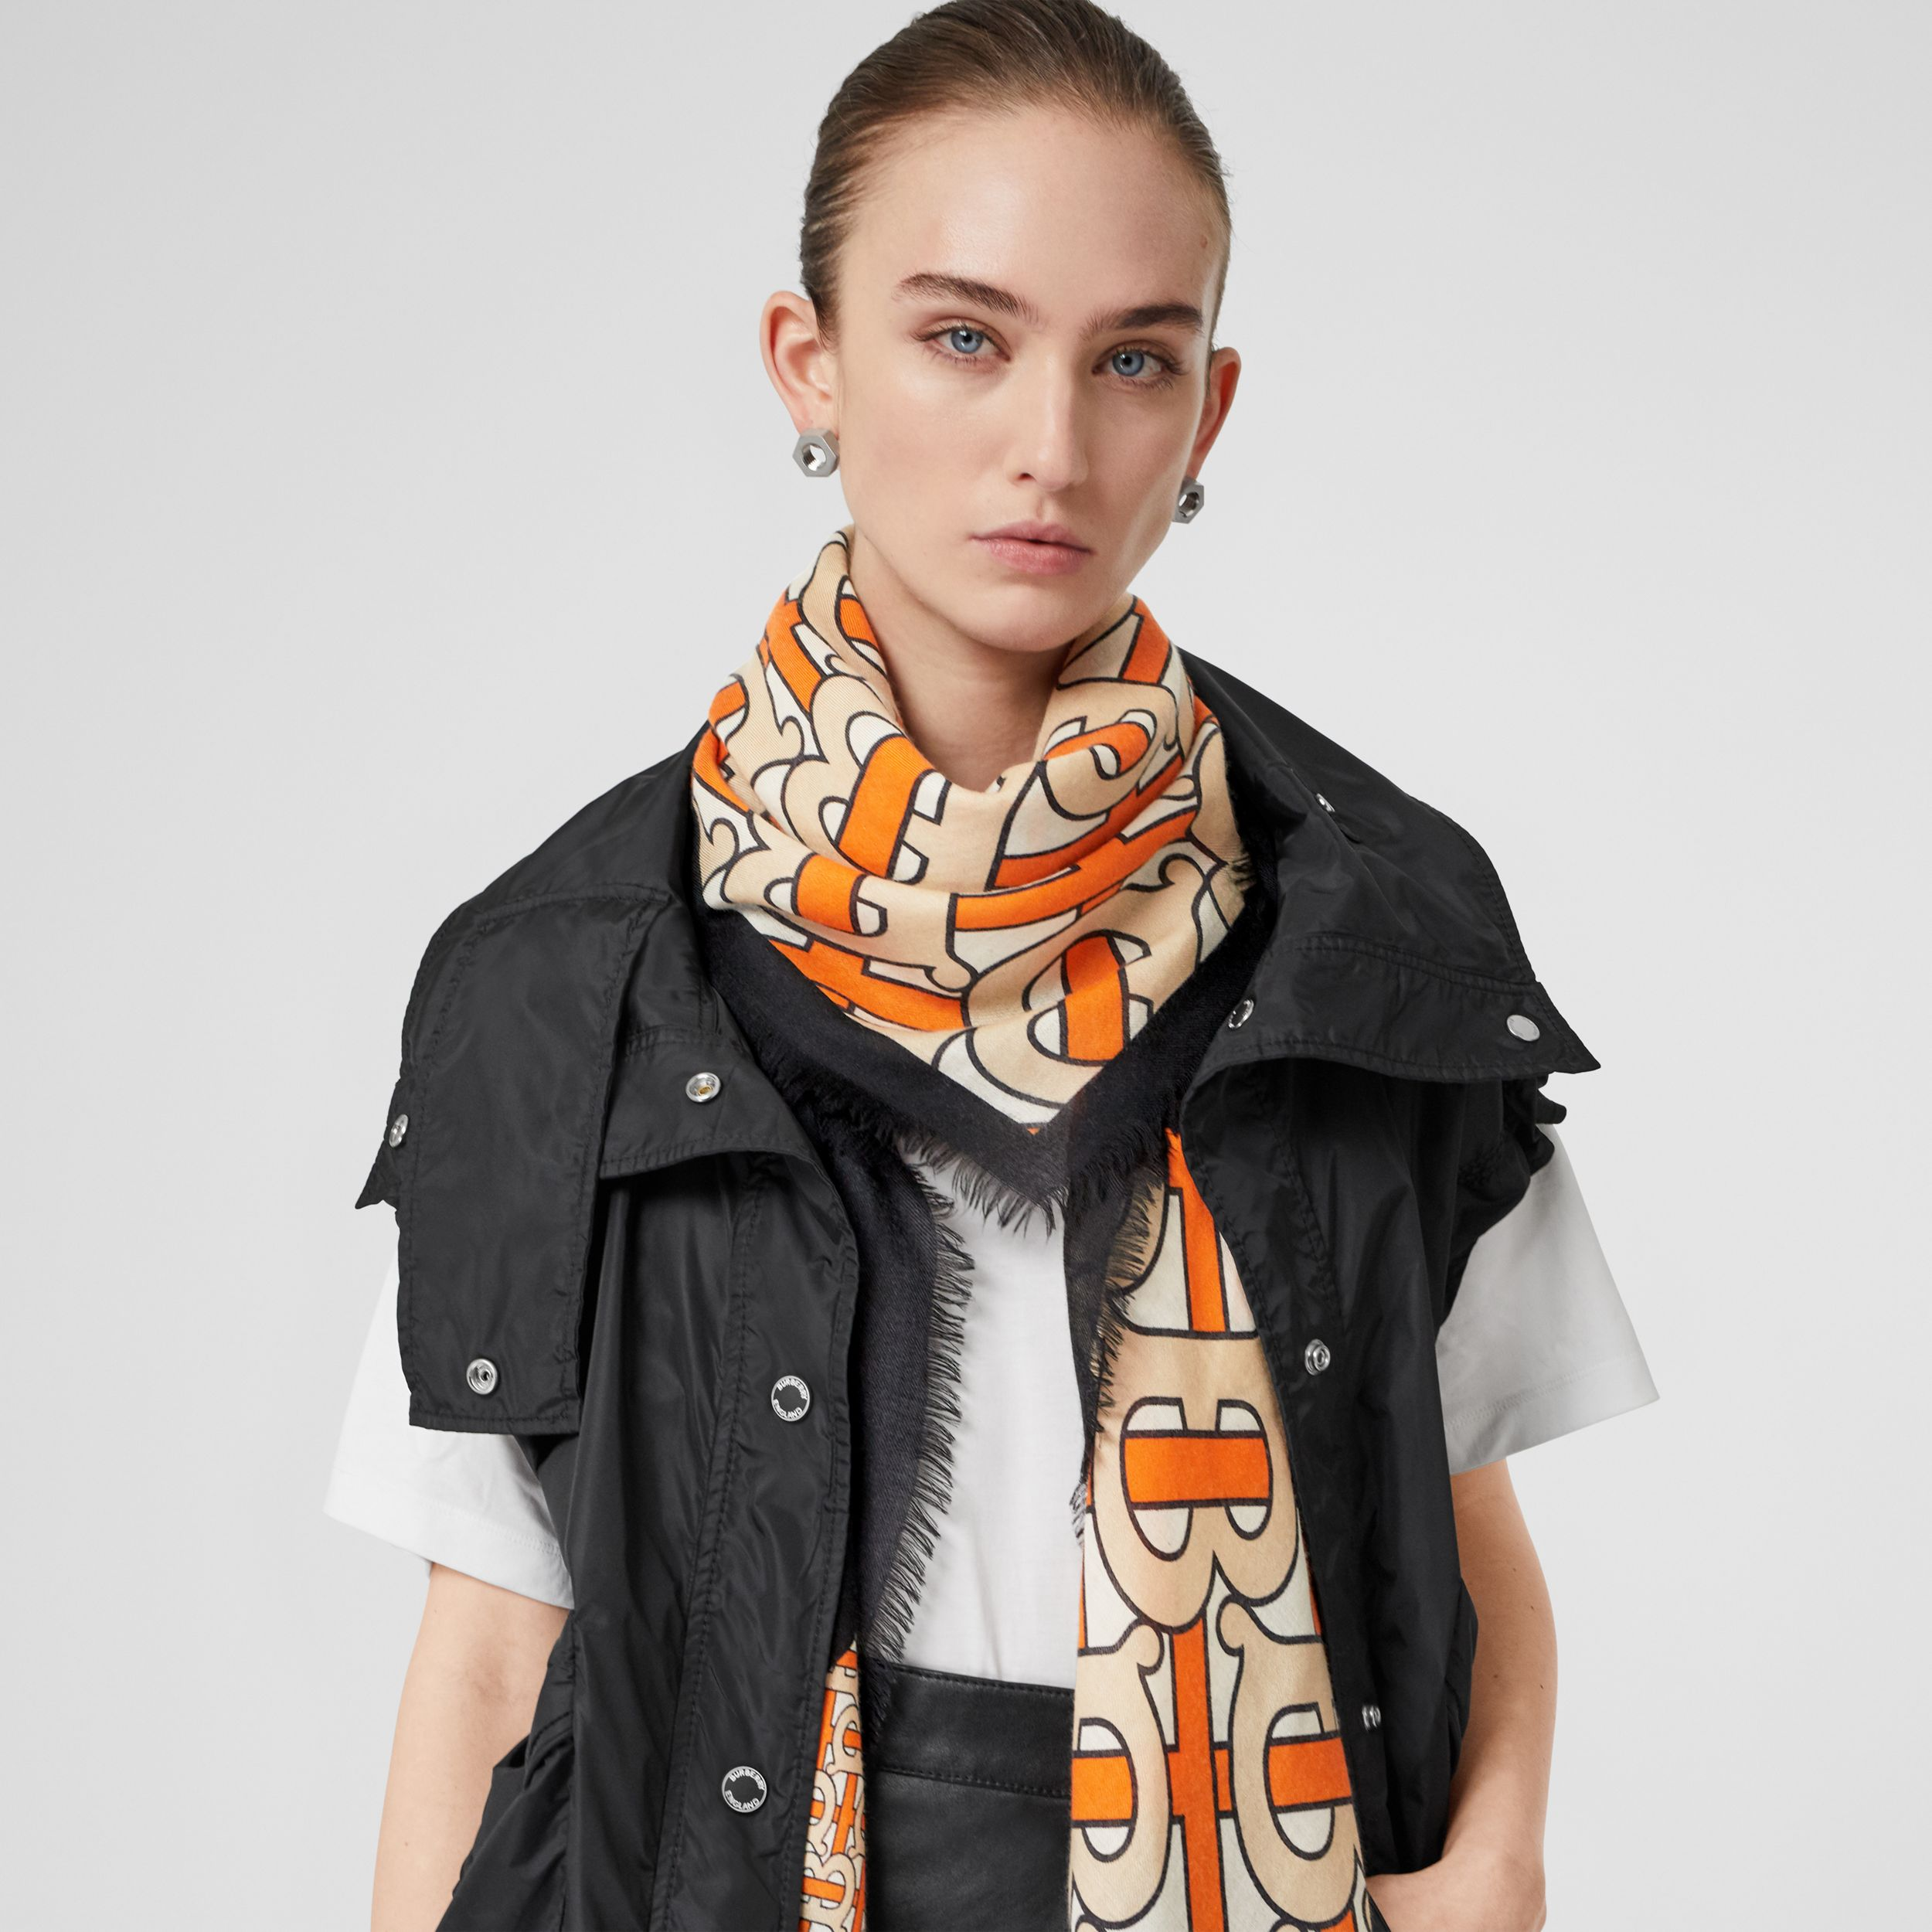 Monogram Print Cashmere Large Square Scarf in Bright Orange | Burberry - 3